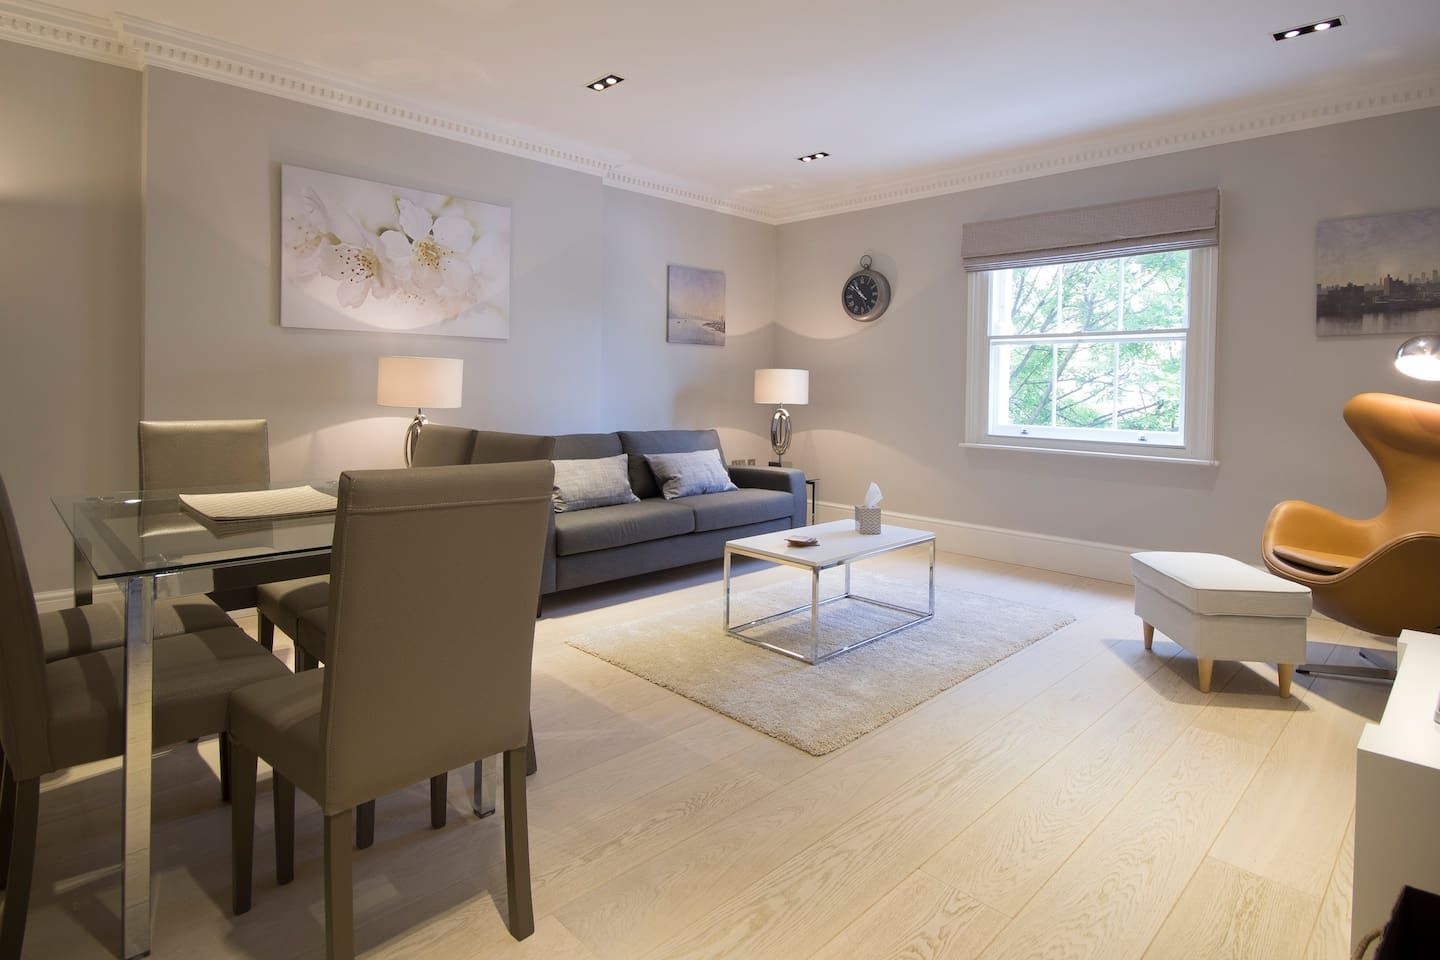 Nestled in one of London's most fashionable area, this stunning two bed, two bath apartment on the 2nd floor of a restored townhouse offering luxury living and a perfect base for exploring London